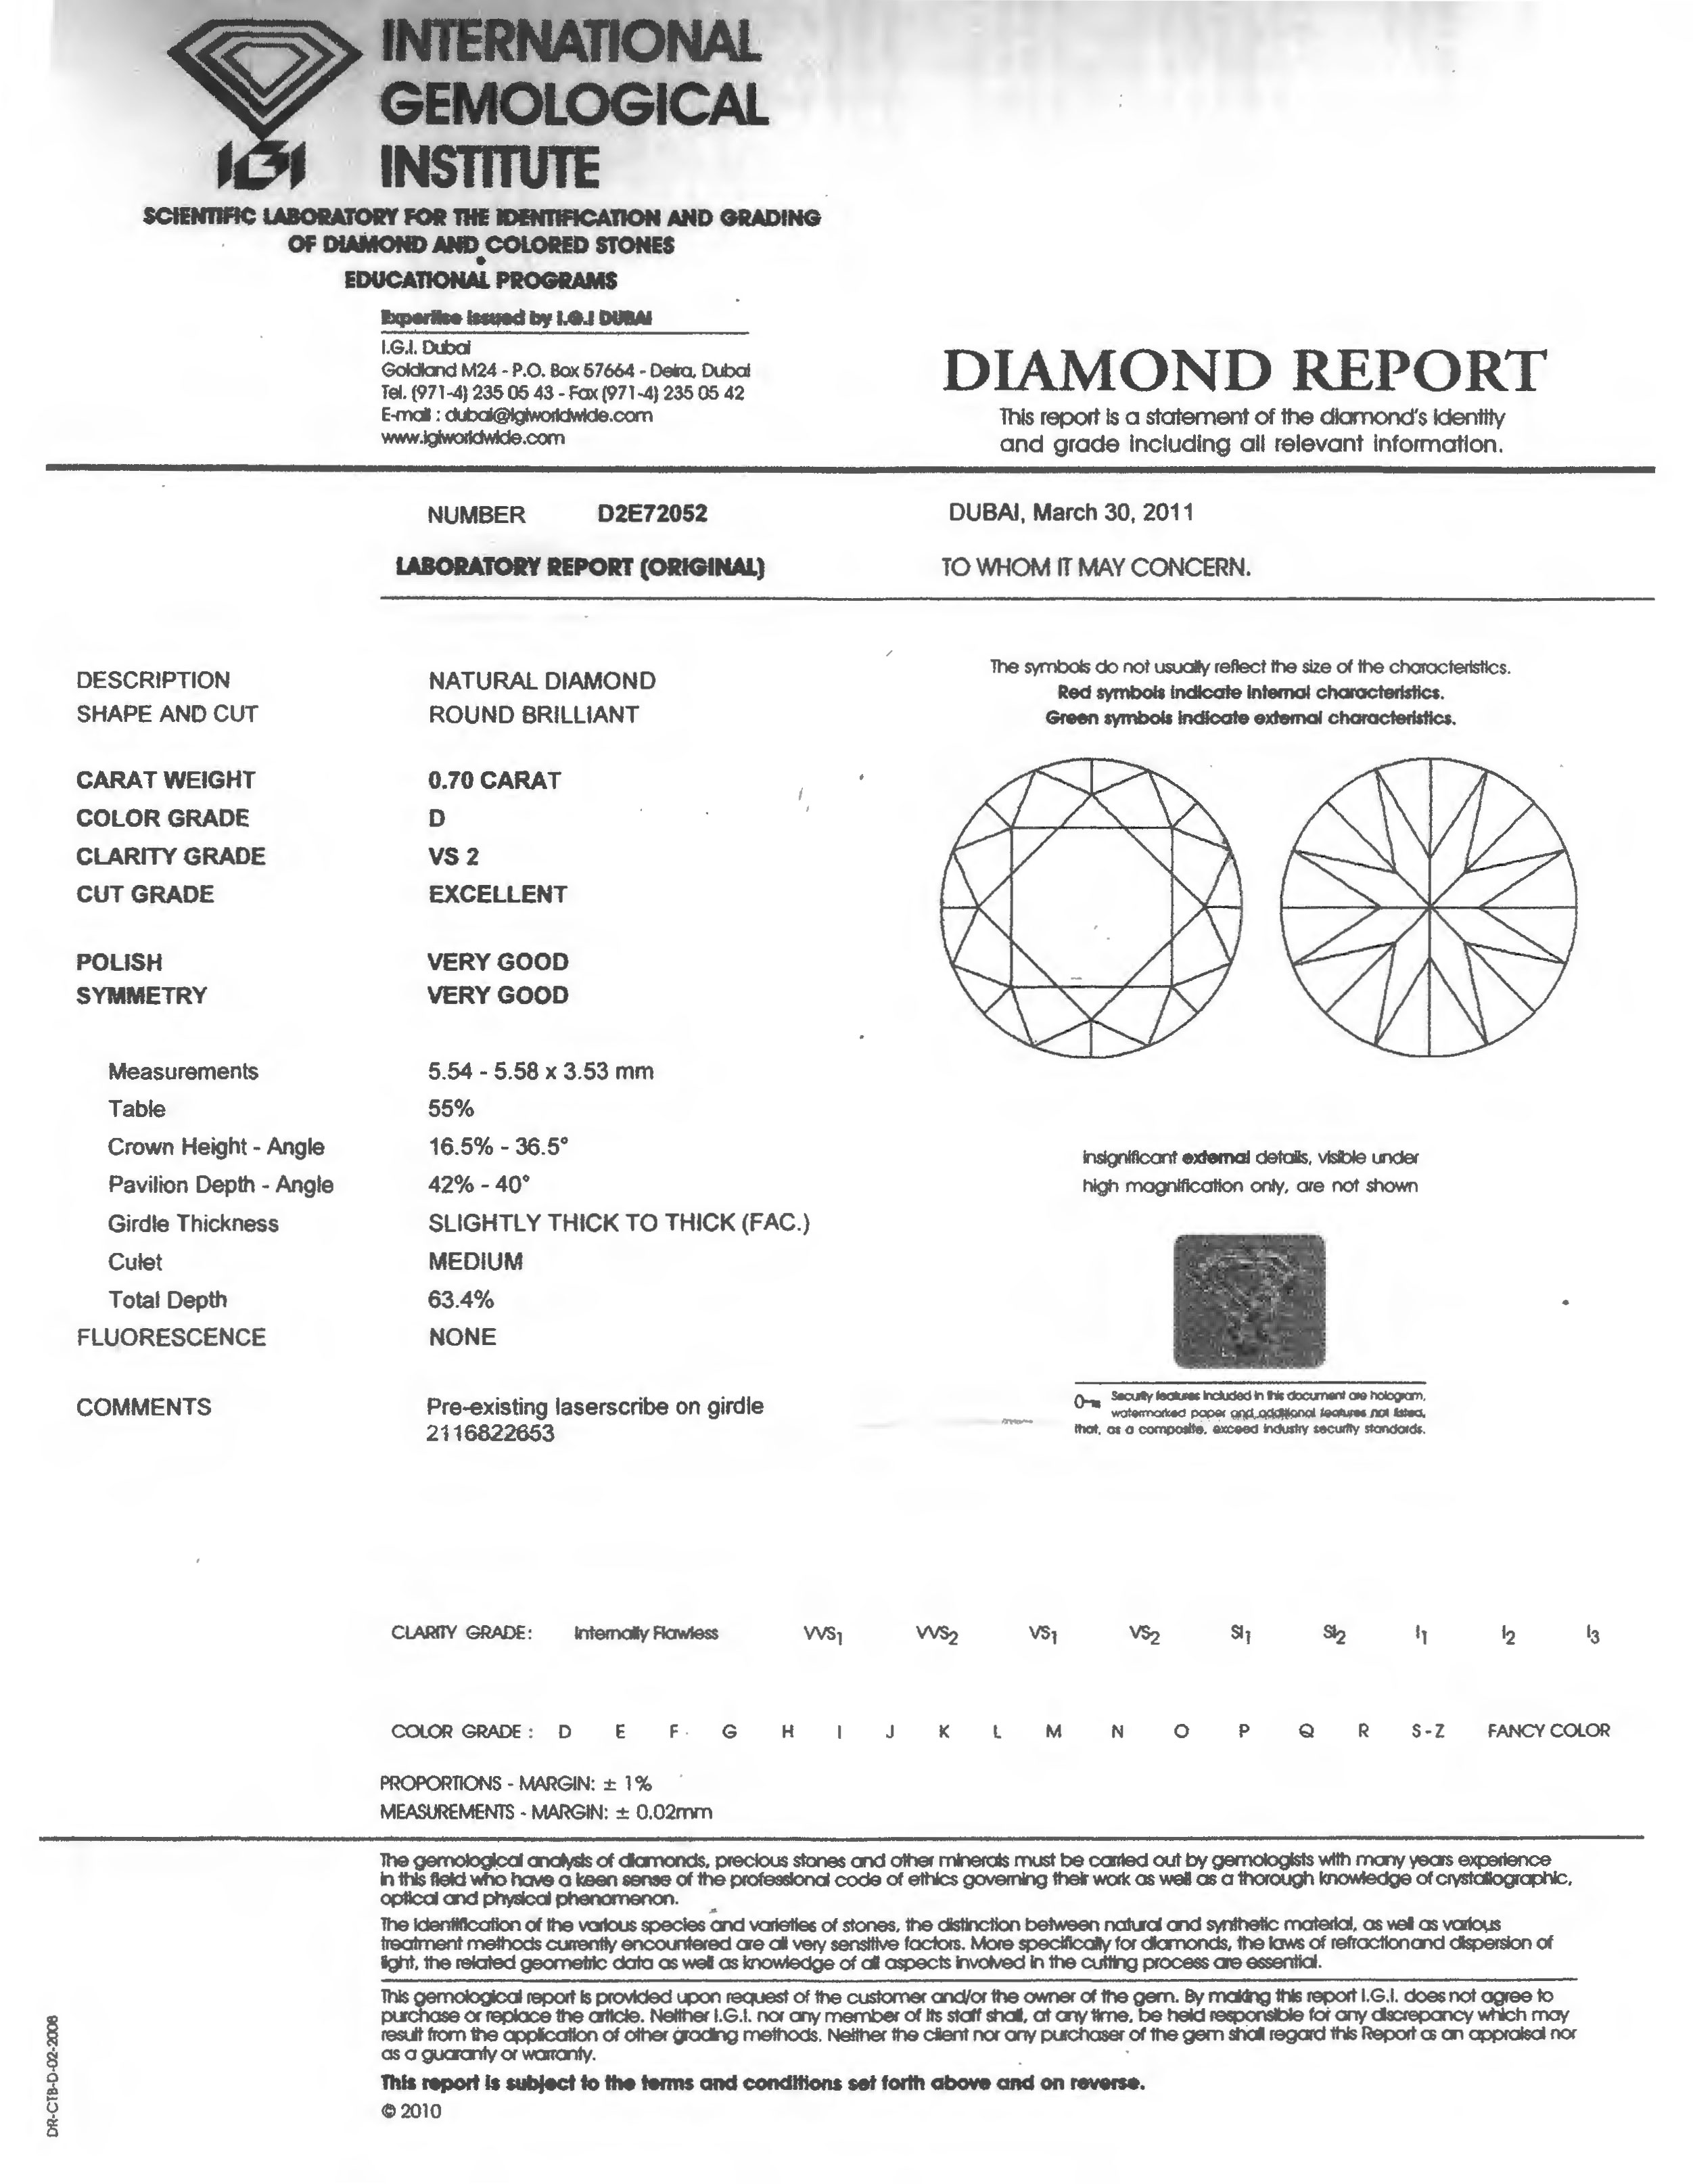 new igi diamond institute brochure admissions full international college gemological delhi